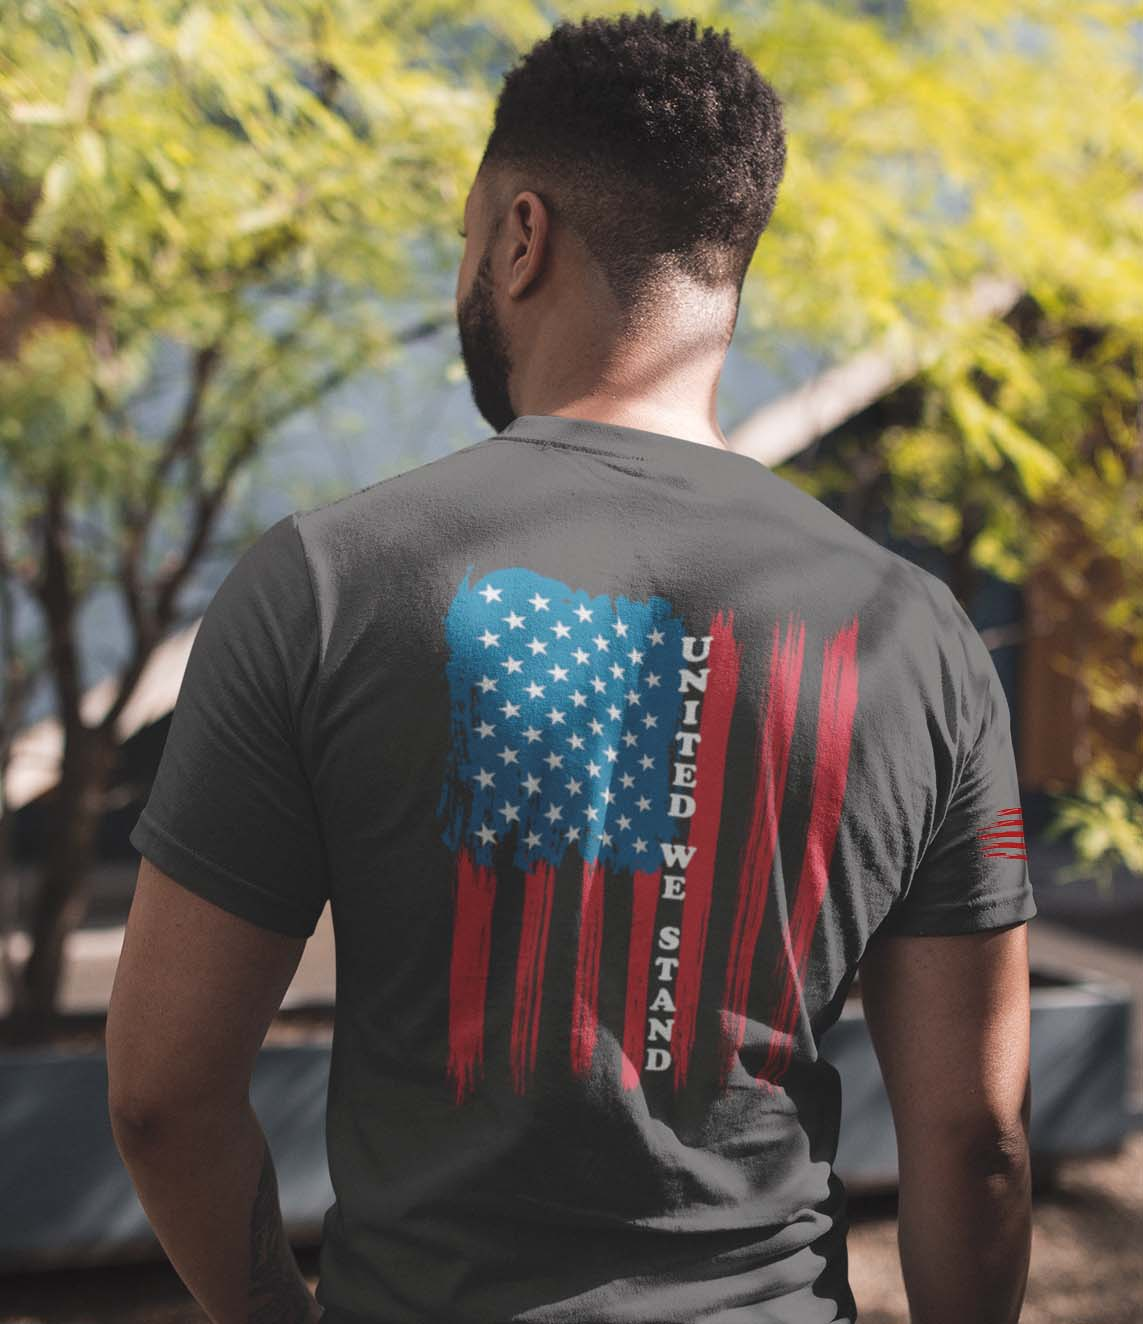 t-shirt with united we stand on back on charcoal men's